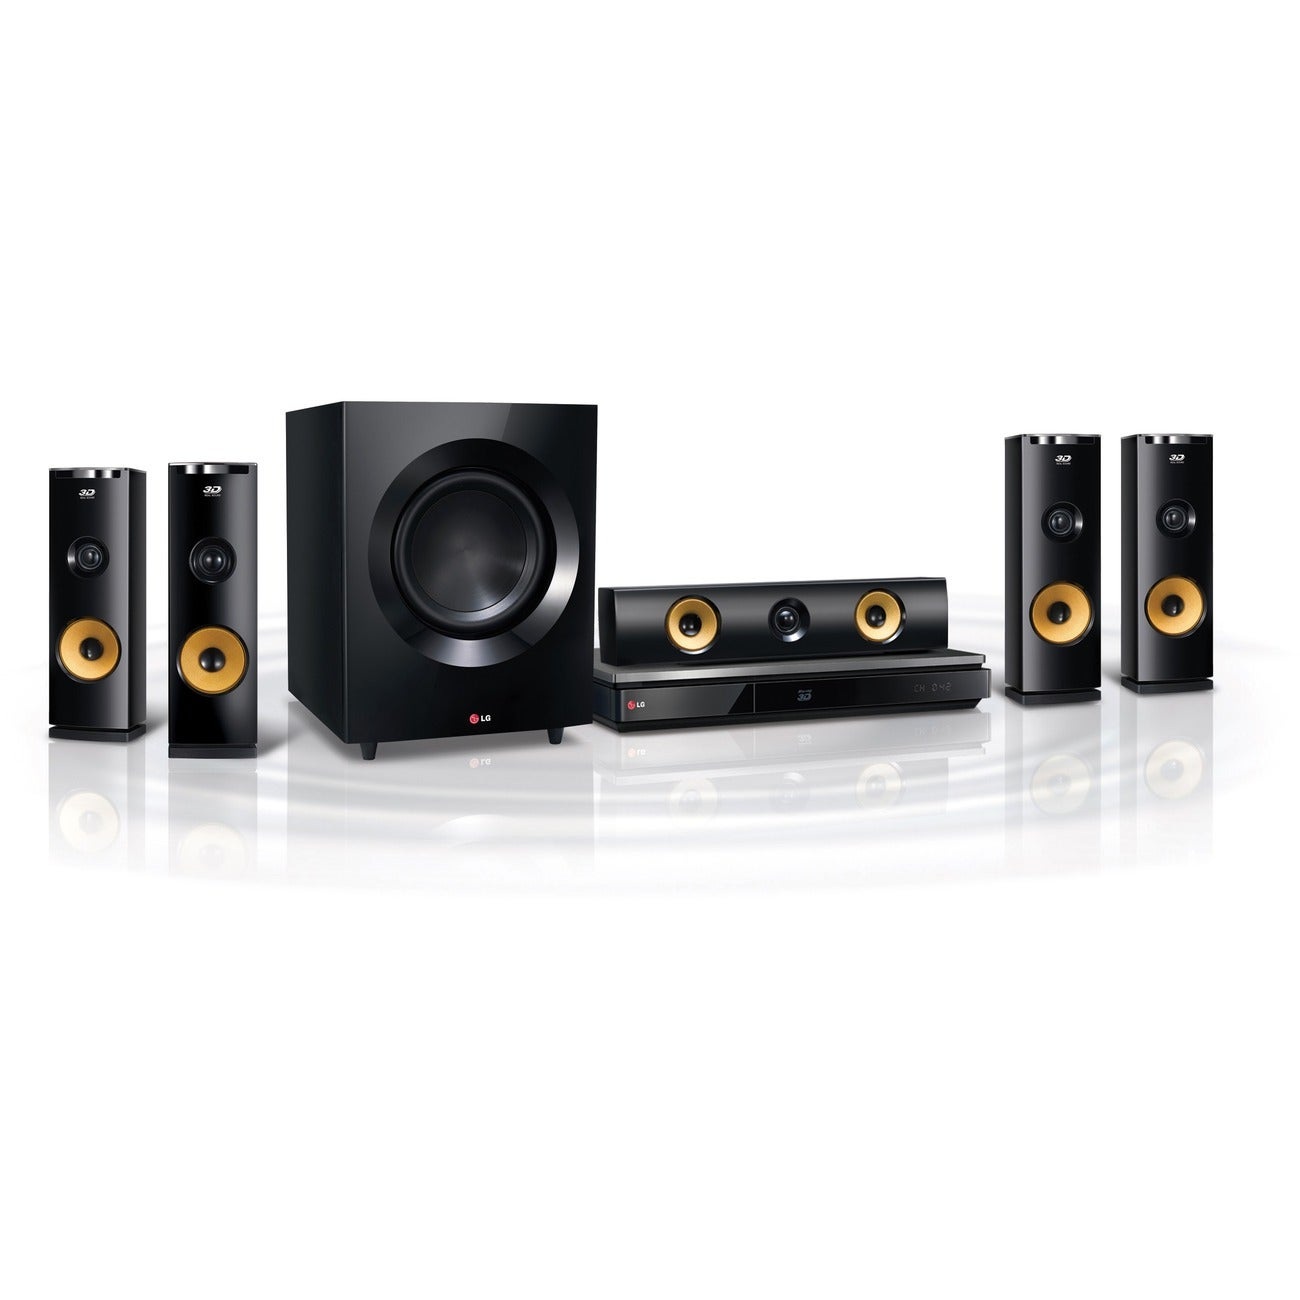 LG BH9230BW 1460W 9.1ch 3D Smart Home Theater System with Wireless Speakers